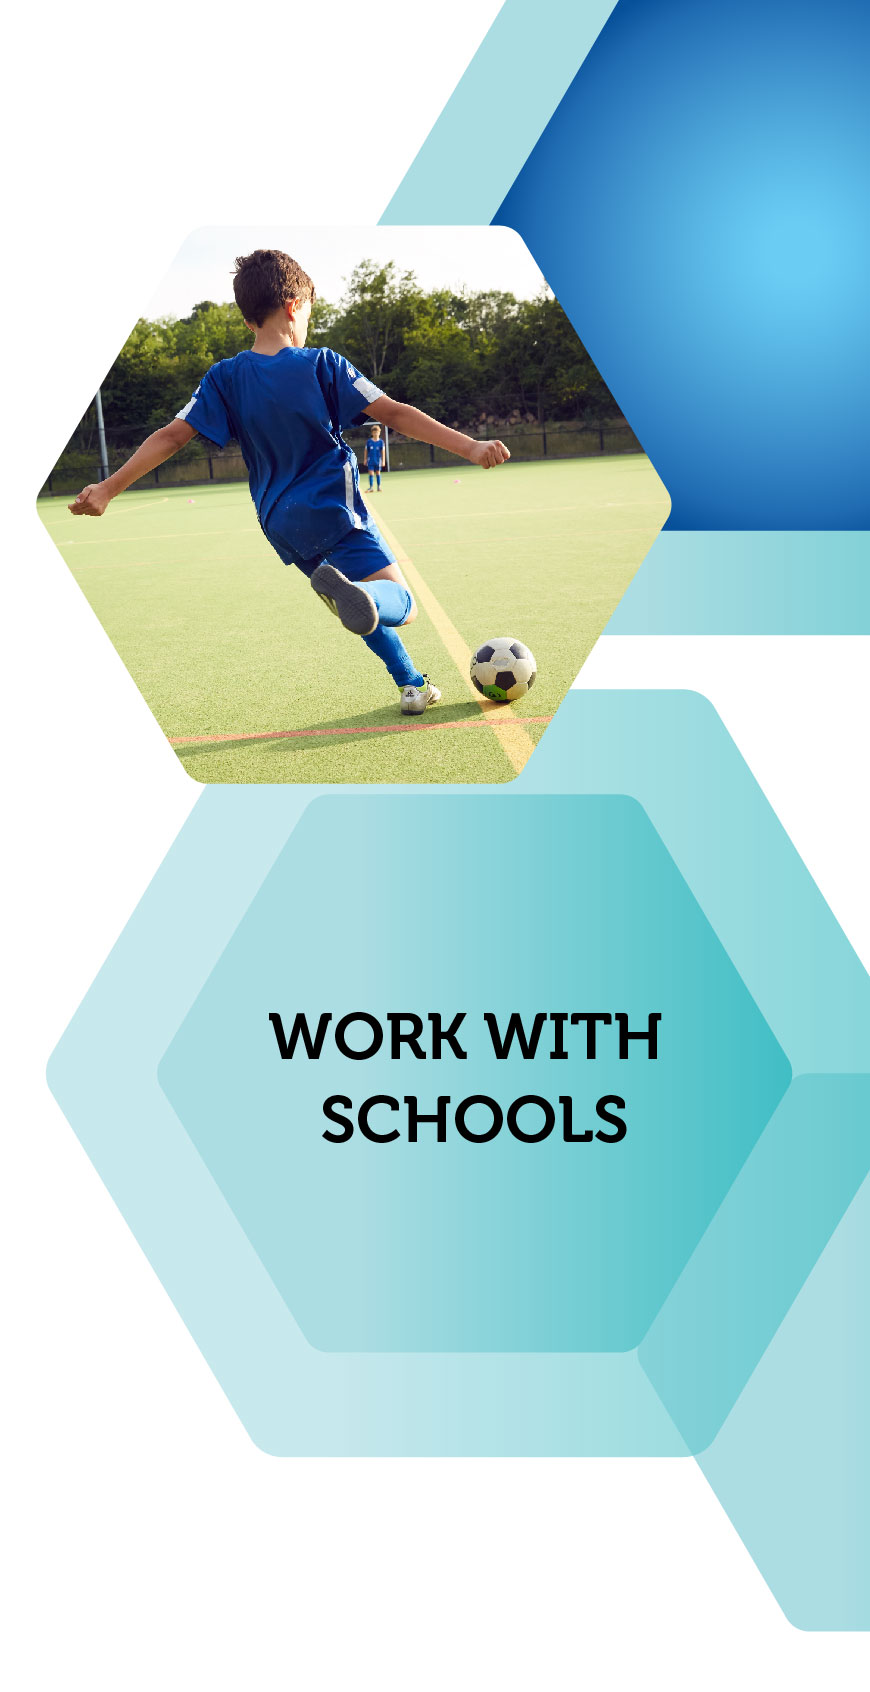 WORK WITH SCHOOLS